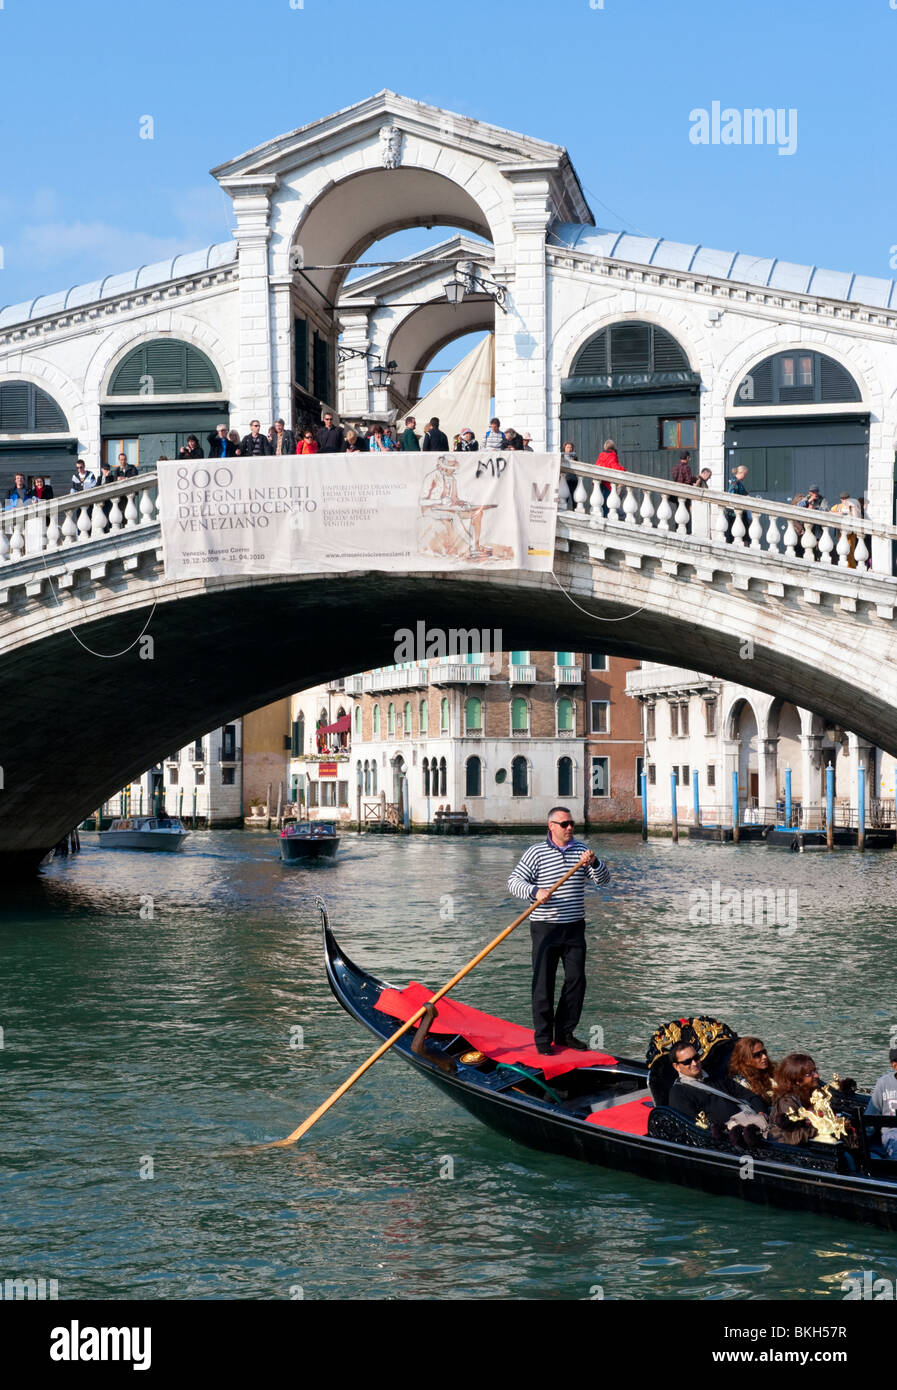 Gondolier and his gondola on the Grand Canal at Rialto Bridge in Venice Italy - Stock Image